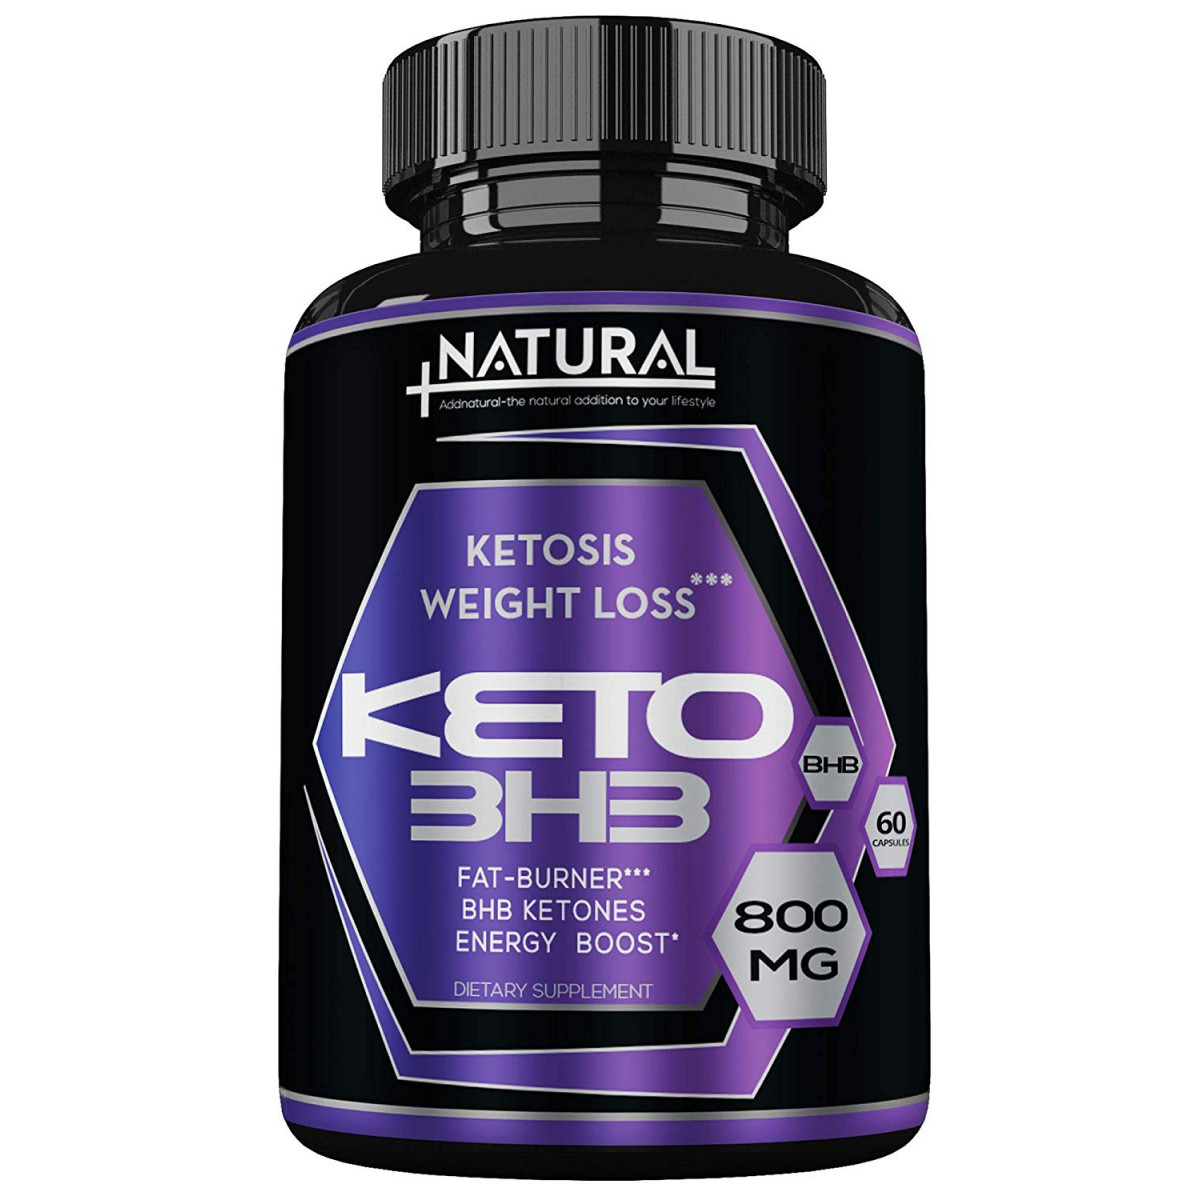 Keto Diet Supplements Can Be Fun For Everyone